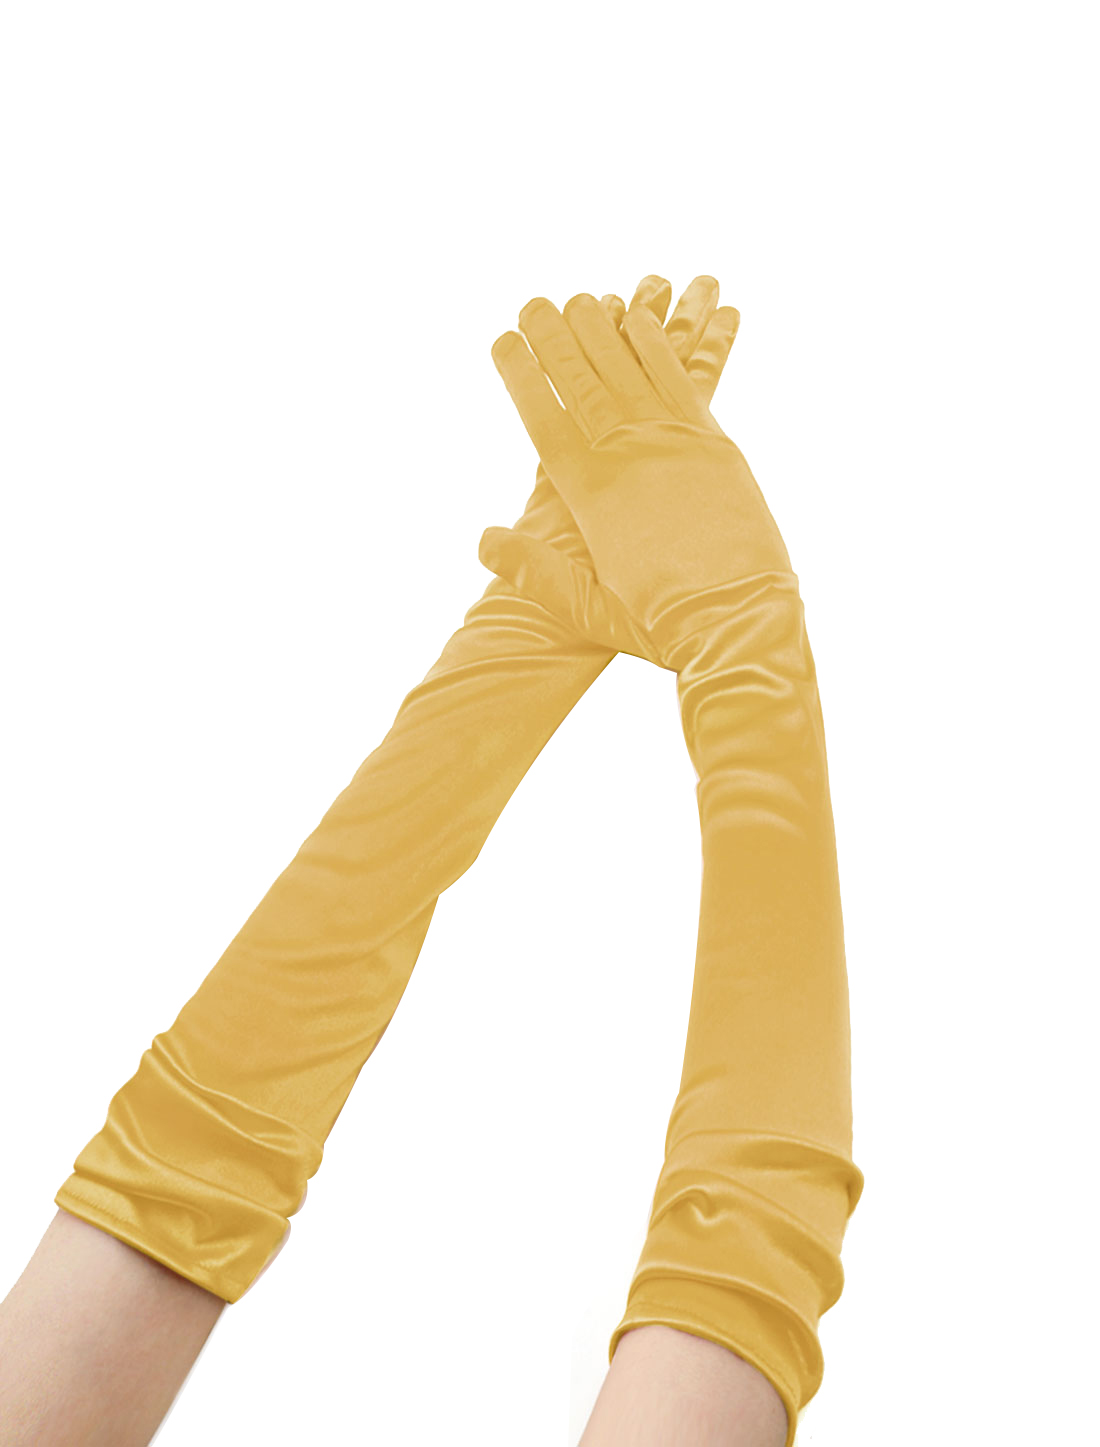 Women Shiny Stretchy Opera Length Full Finger Gloves Pair Gold